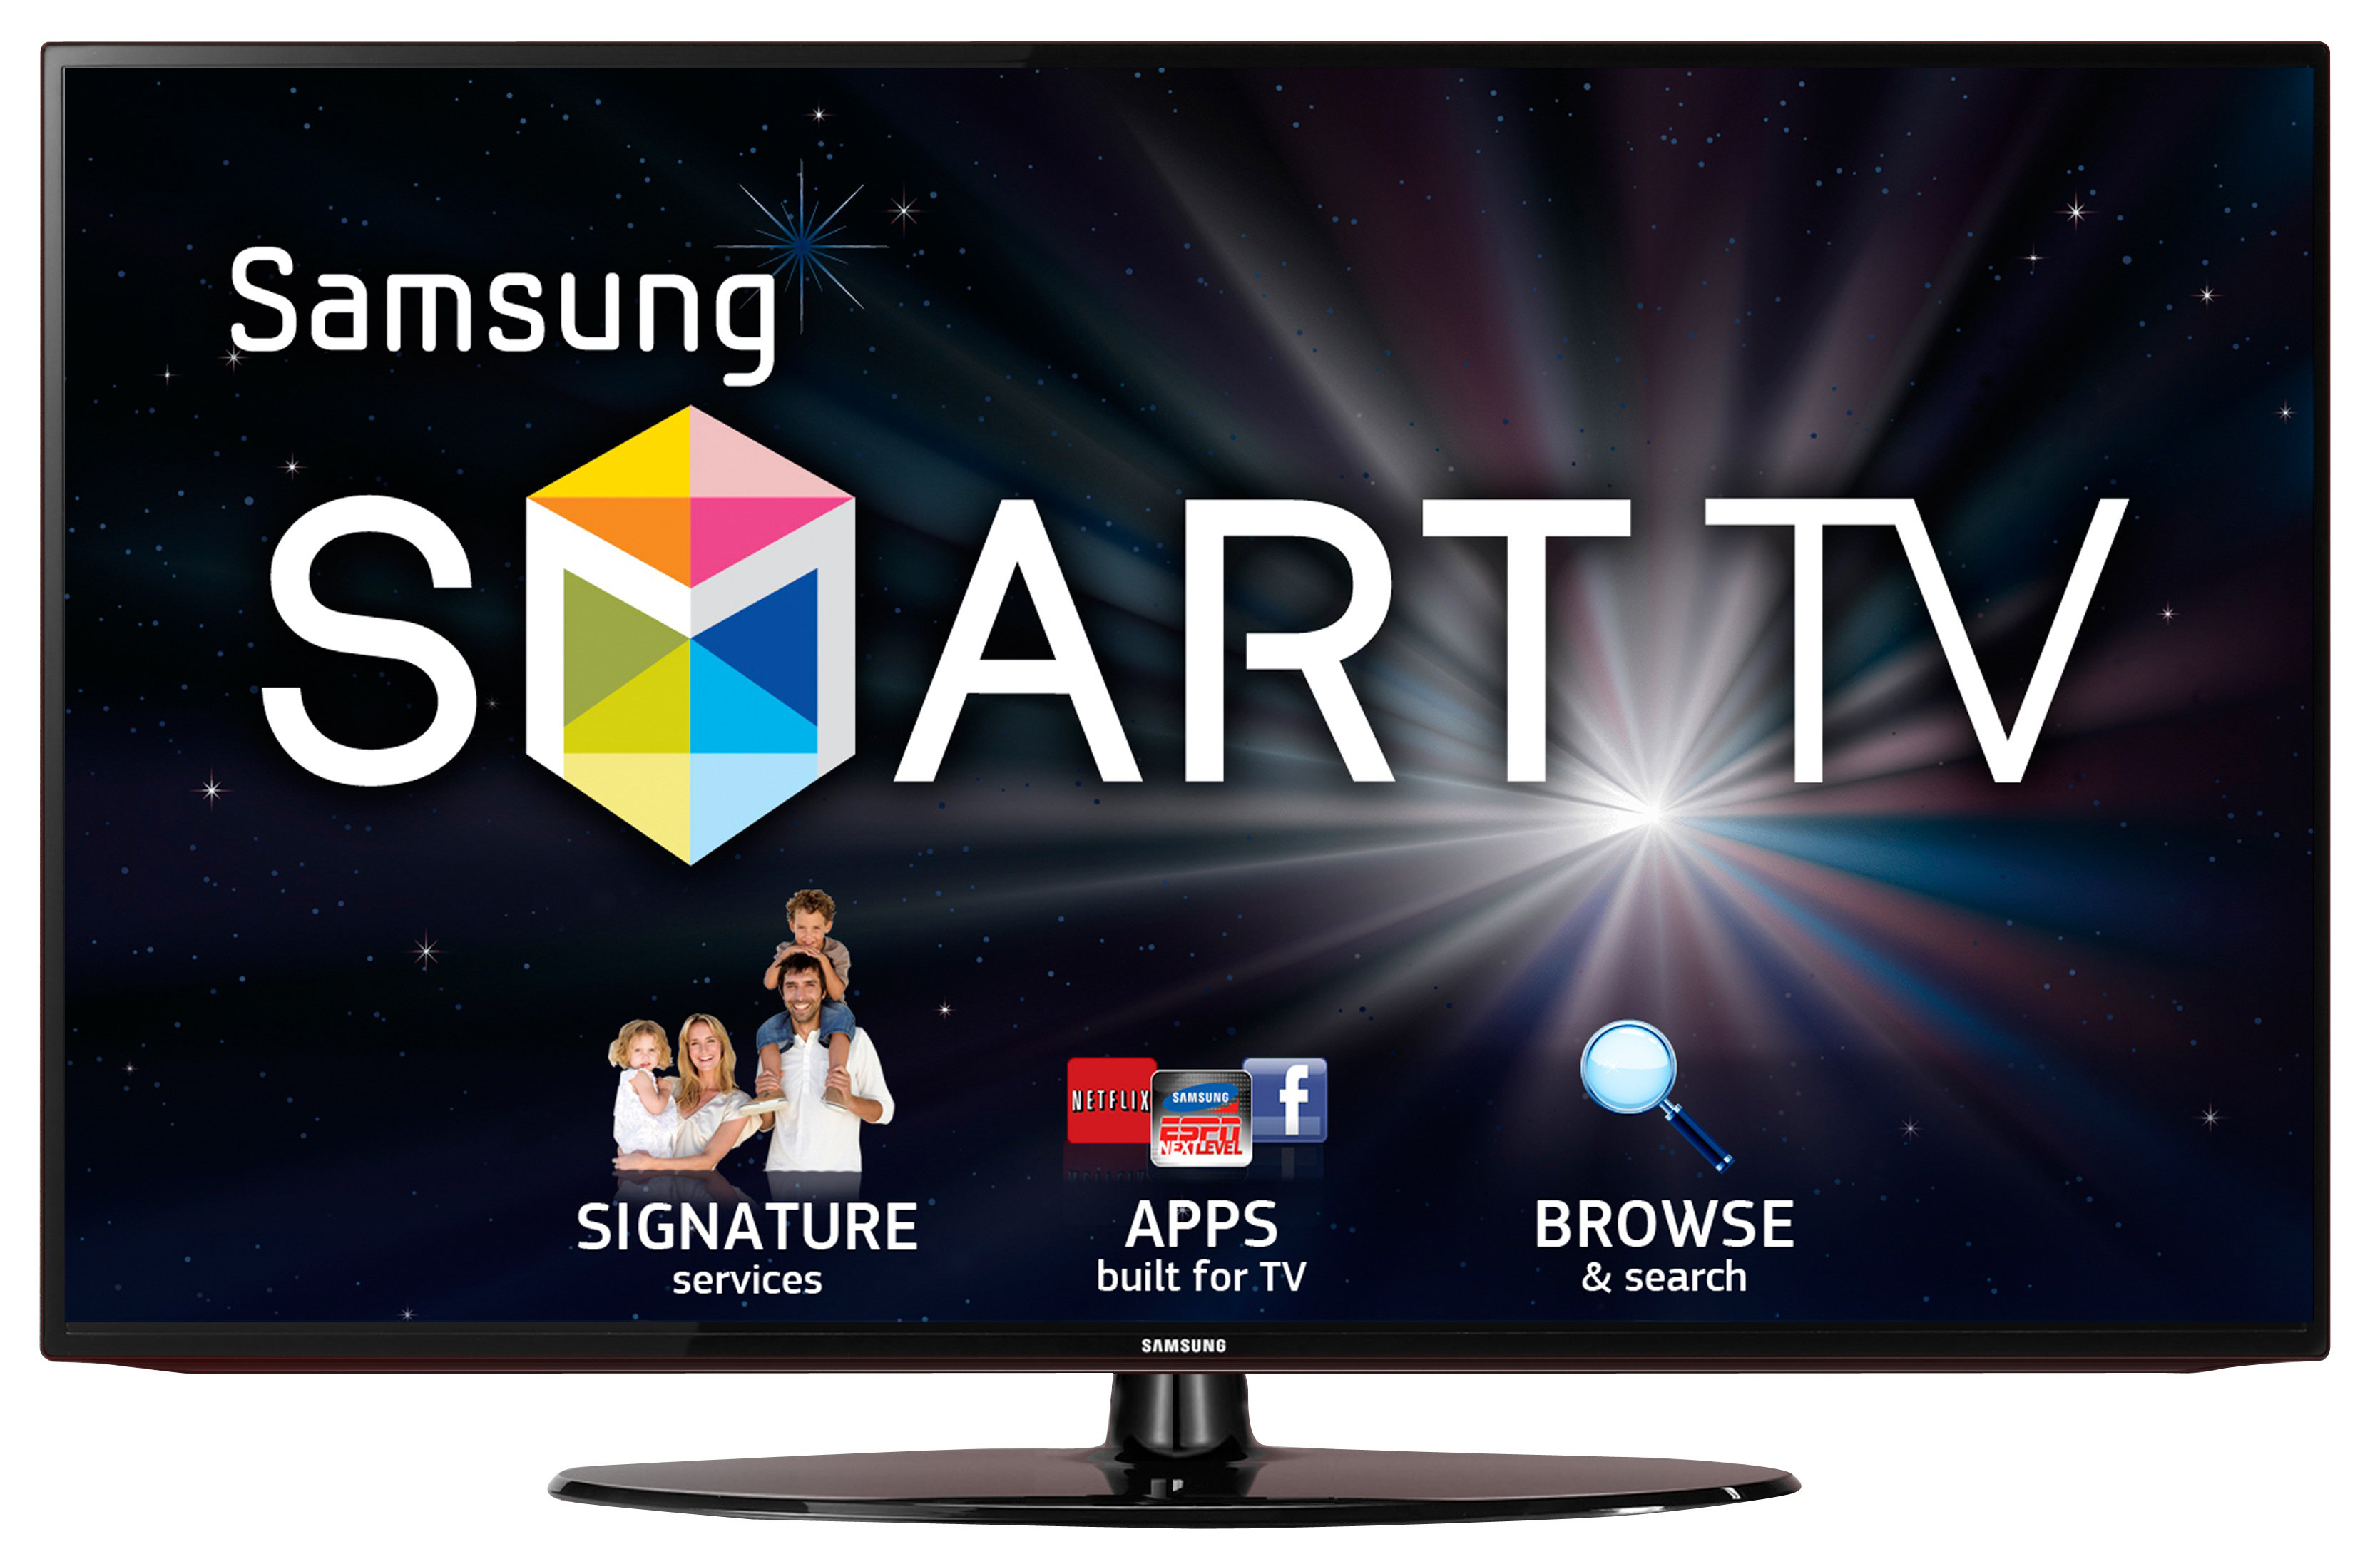 With this smart hdtv smart content provides new ways to explore and